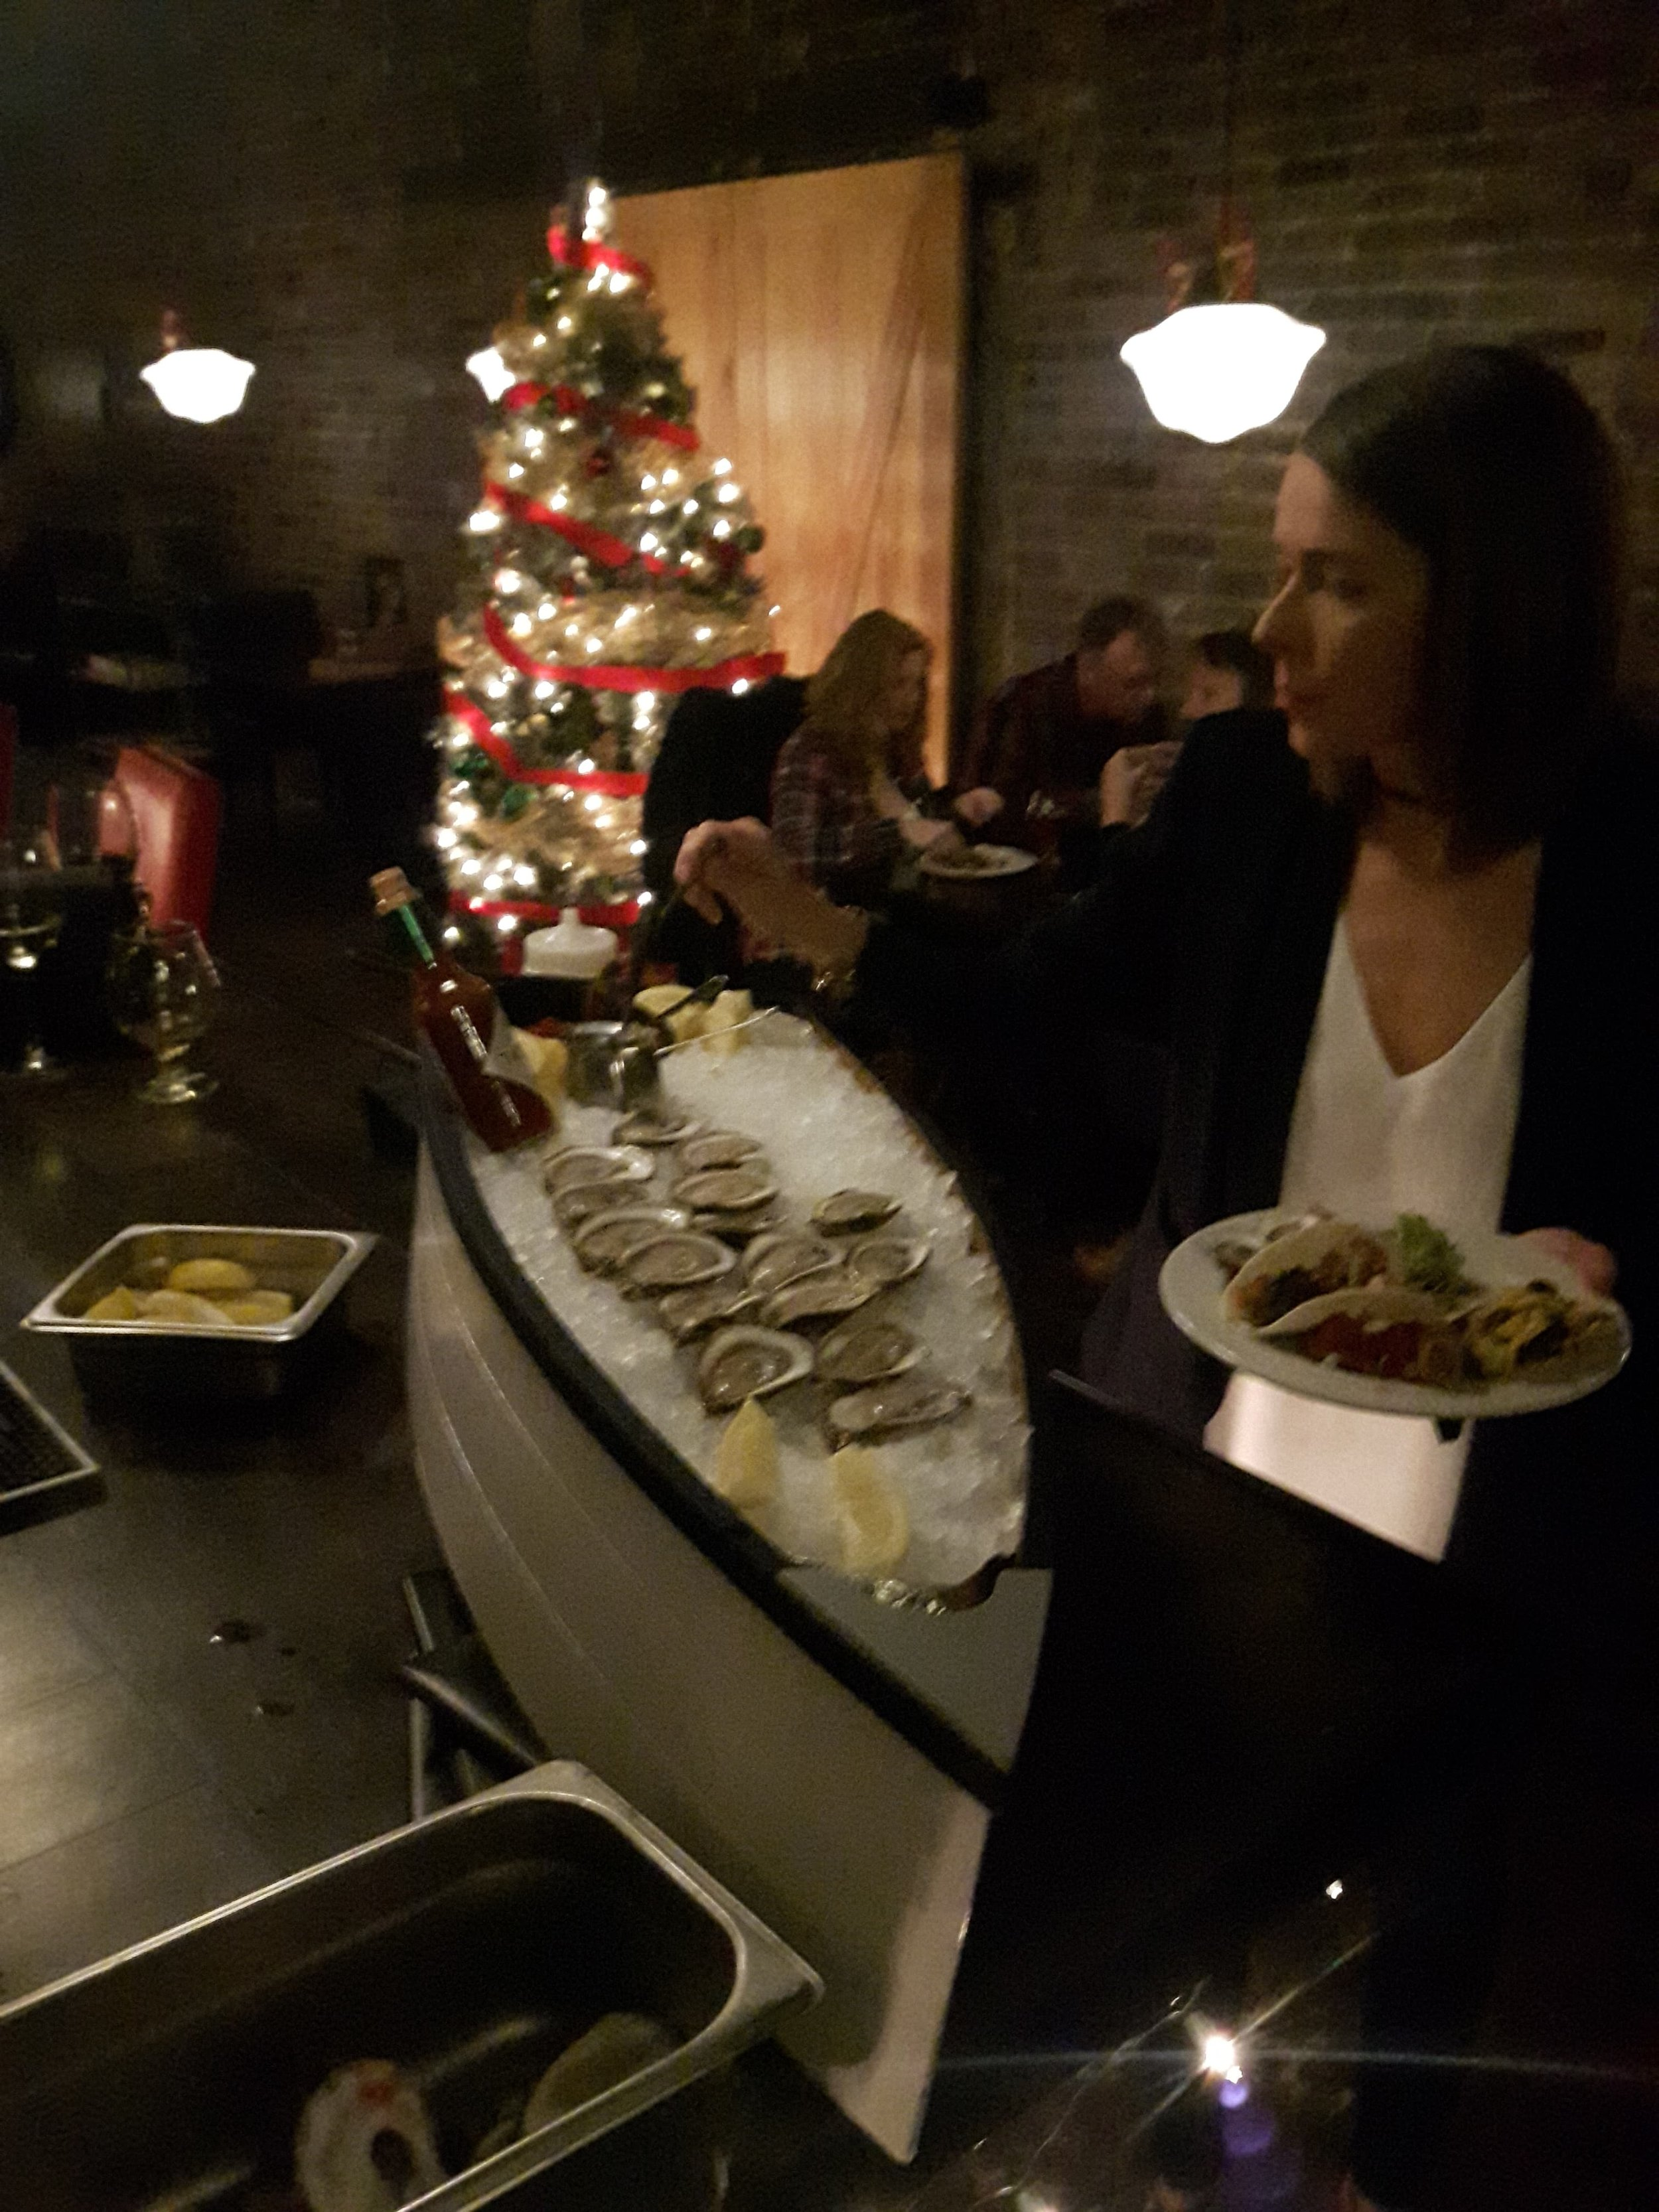 Let's get shucking - We work with you to tailor our oyster bar to your specific needsLarge wedding party? We've got your bivalve lovers coveredLooking to add some freshness to the upcoming office party? How about an oyster and wine or scotch pairing.